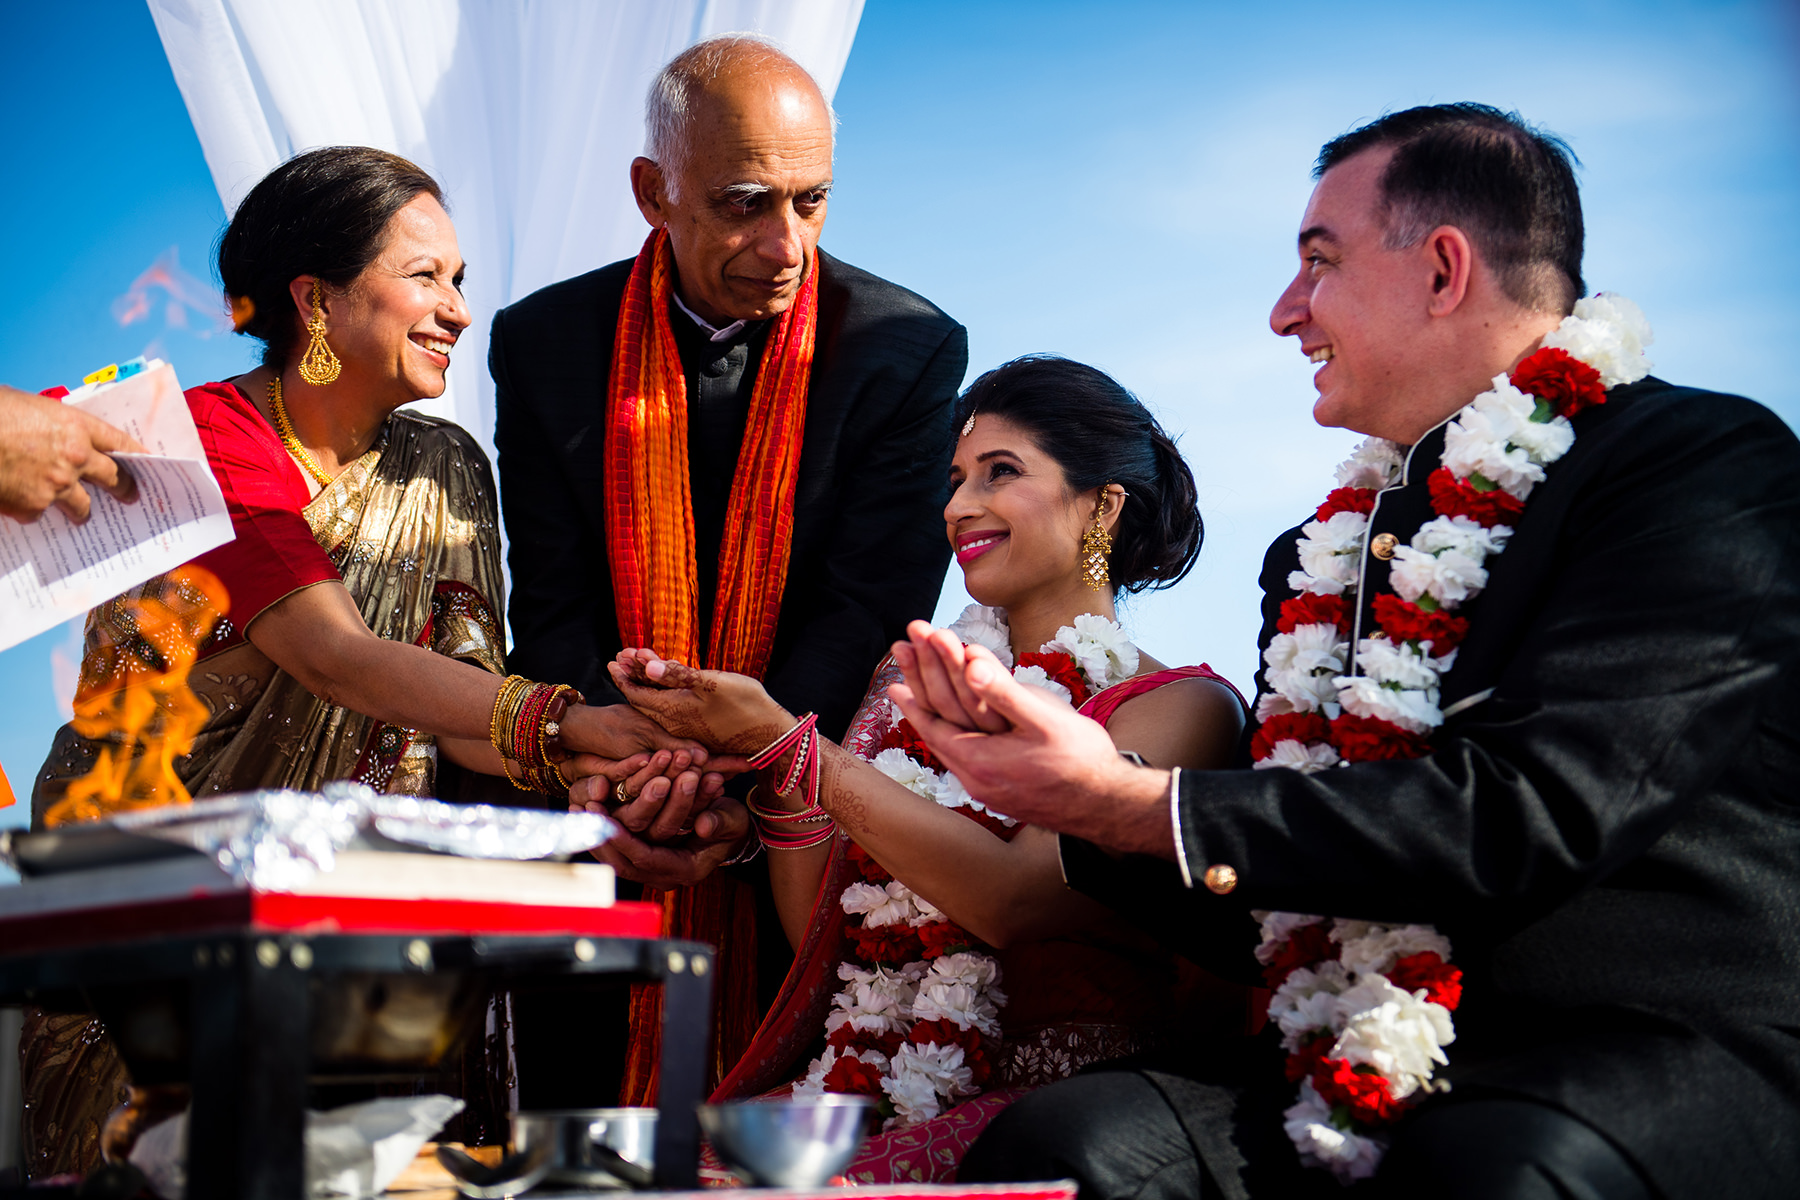 families holding hand together during hindu wedding